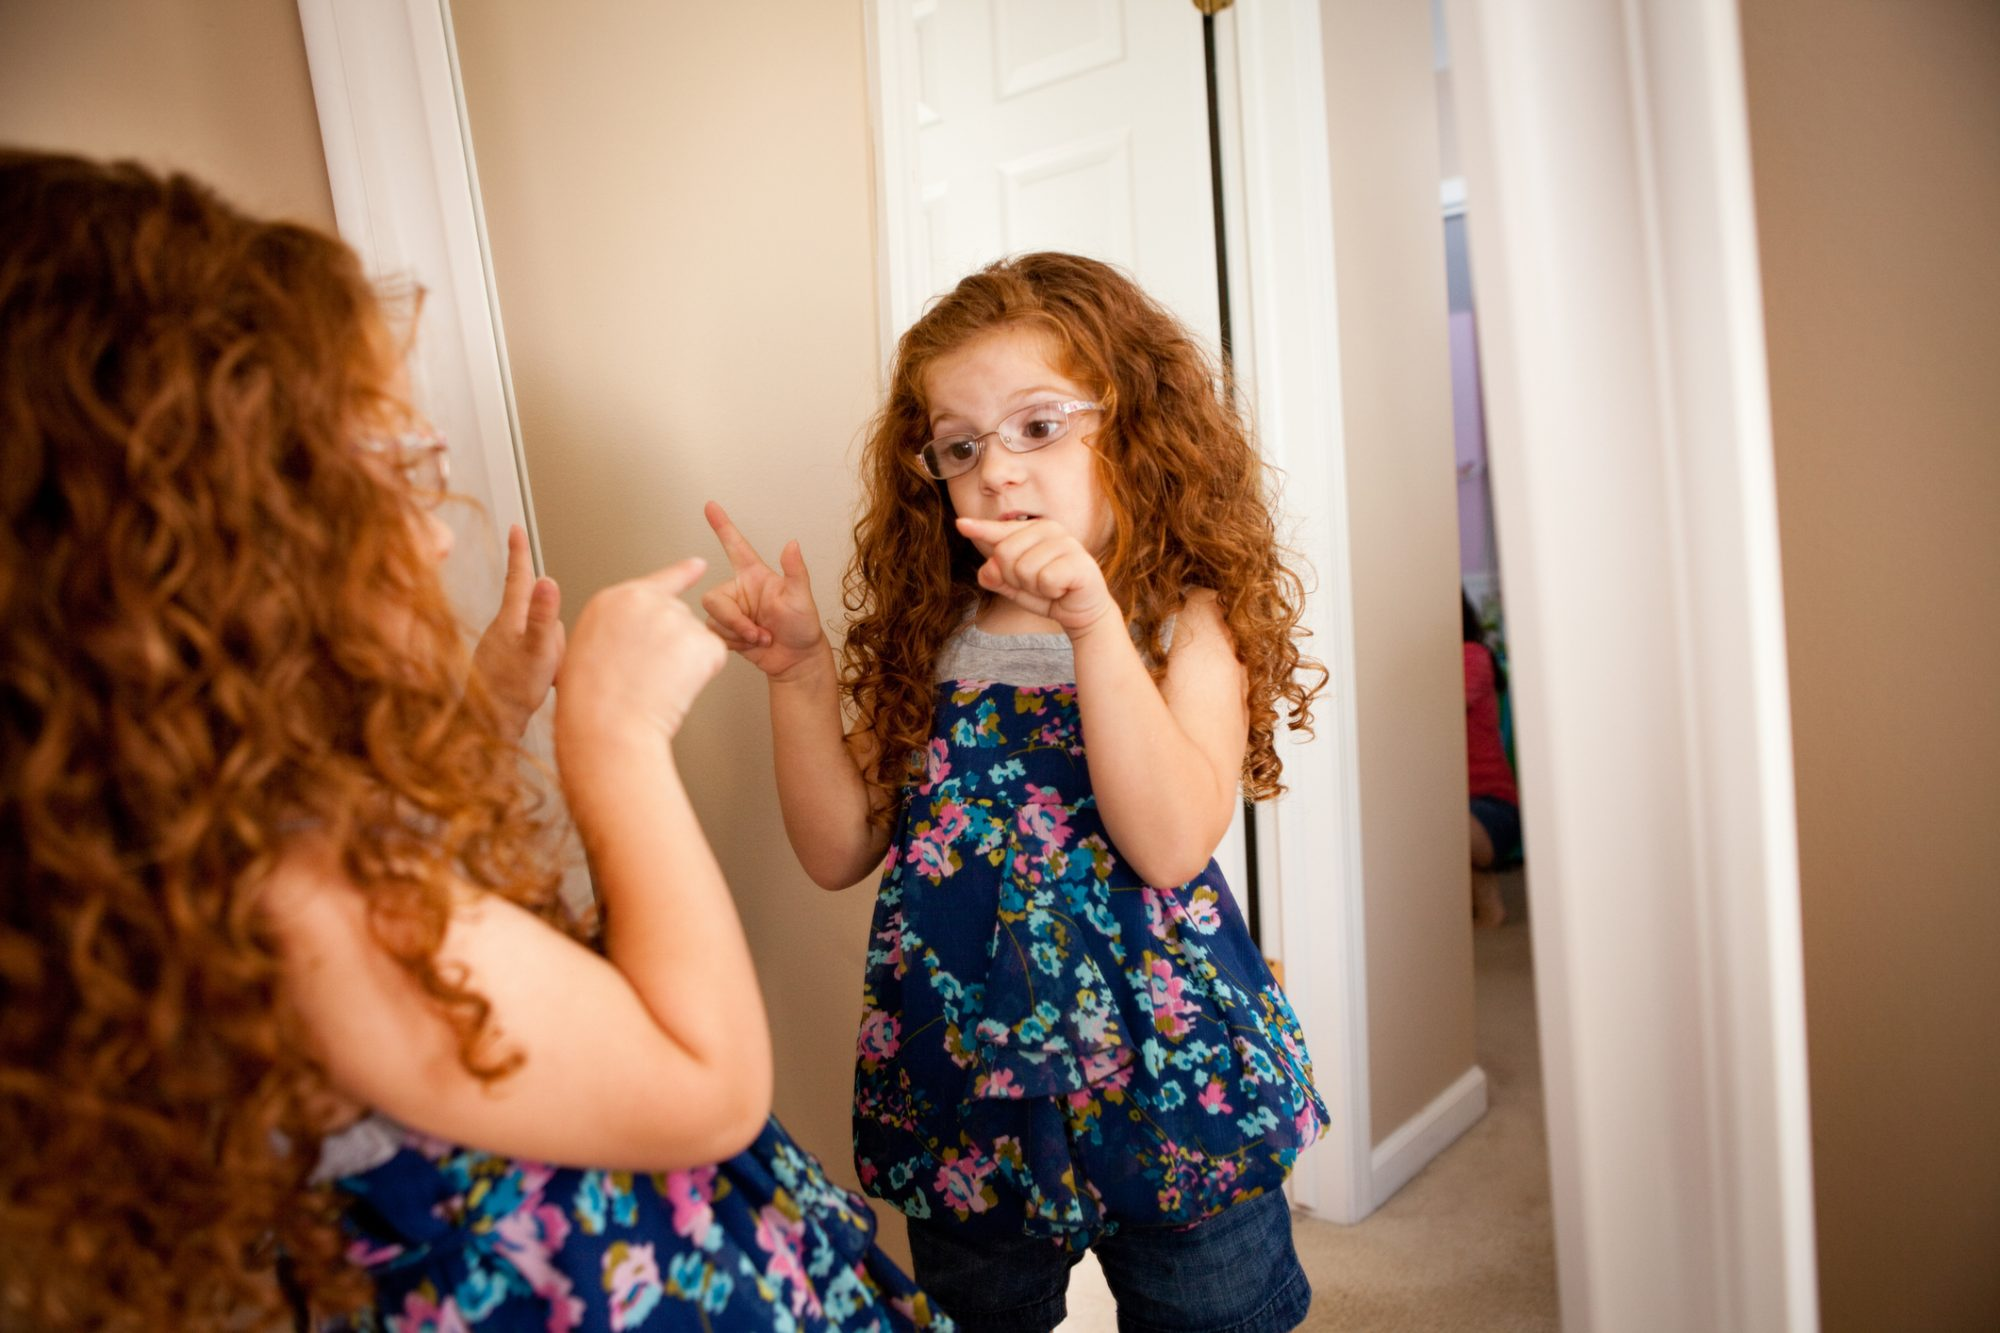 Little Girl Talking to Herself in Mirror